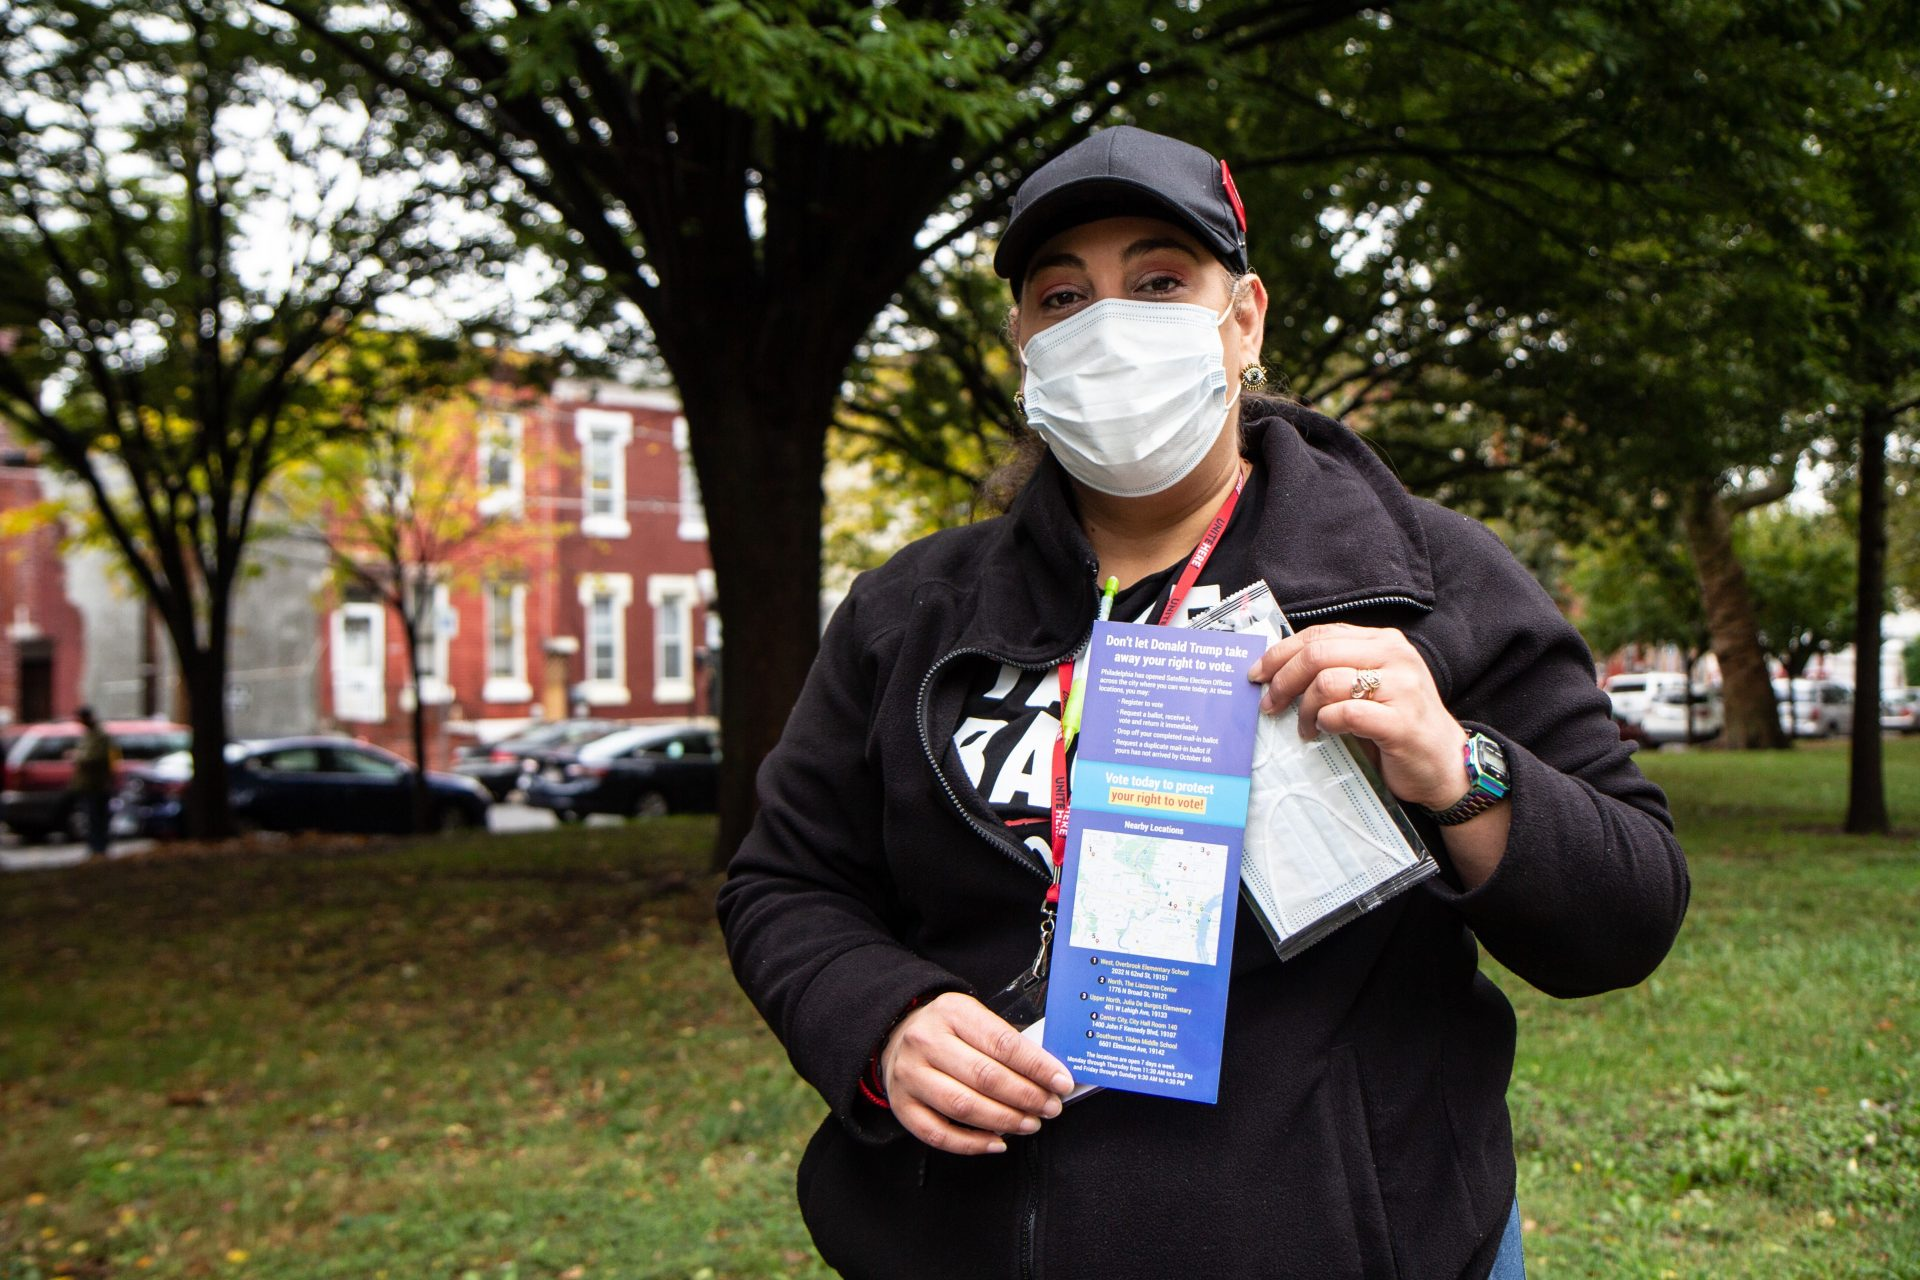 Iris Sanchez is a housekeeper in Atlantic City with Unite Here, out in Philadelphia Monday knocking on doors with information on how to vote.